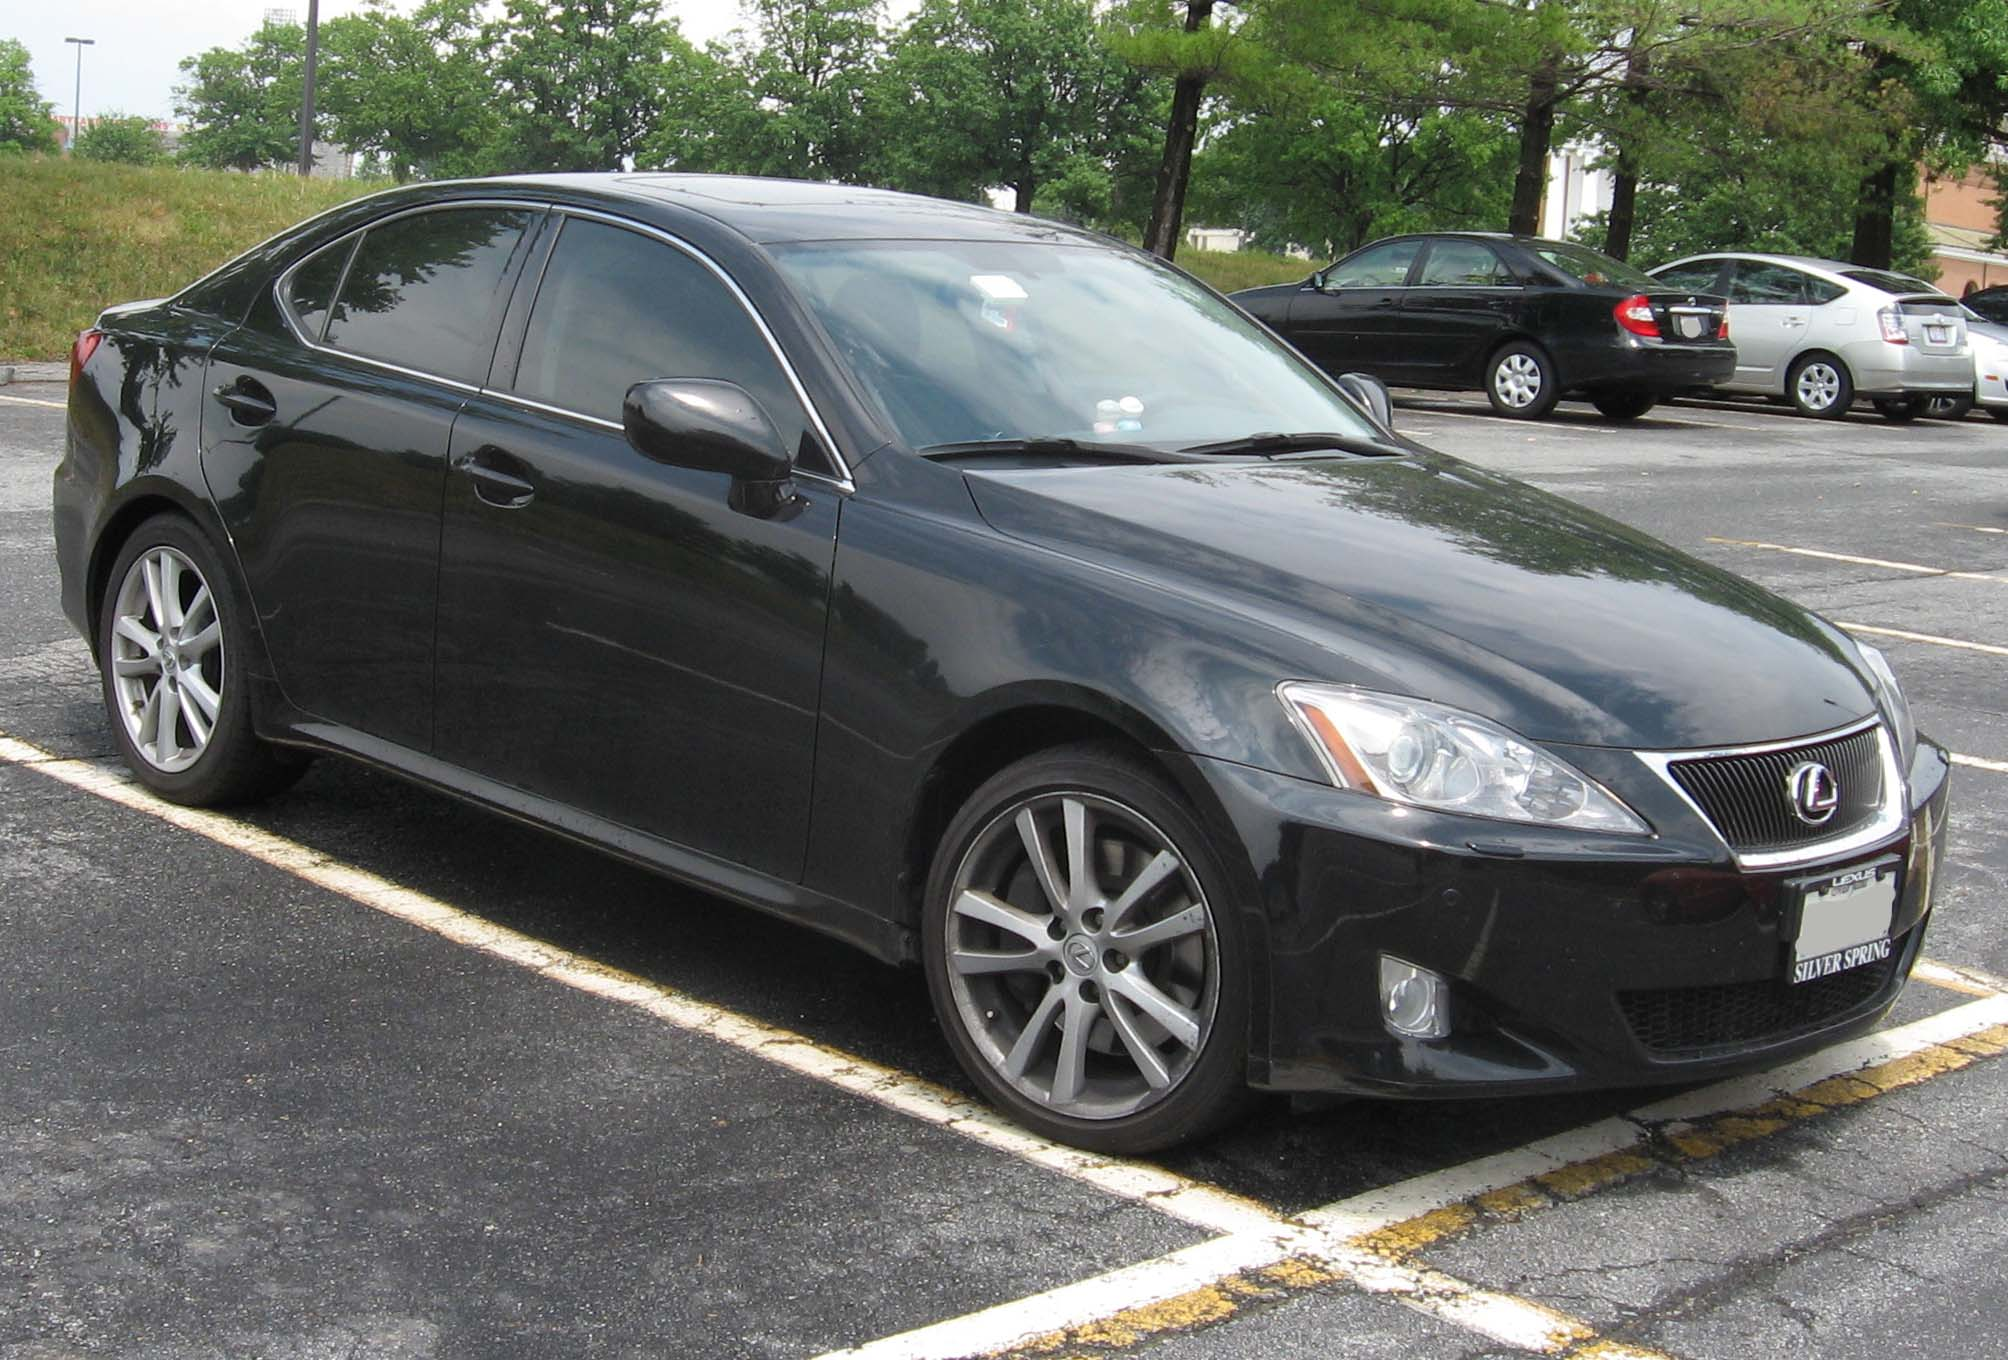 File:Lexus-IS350.jpg - Wikimedia Commons